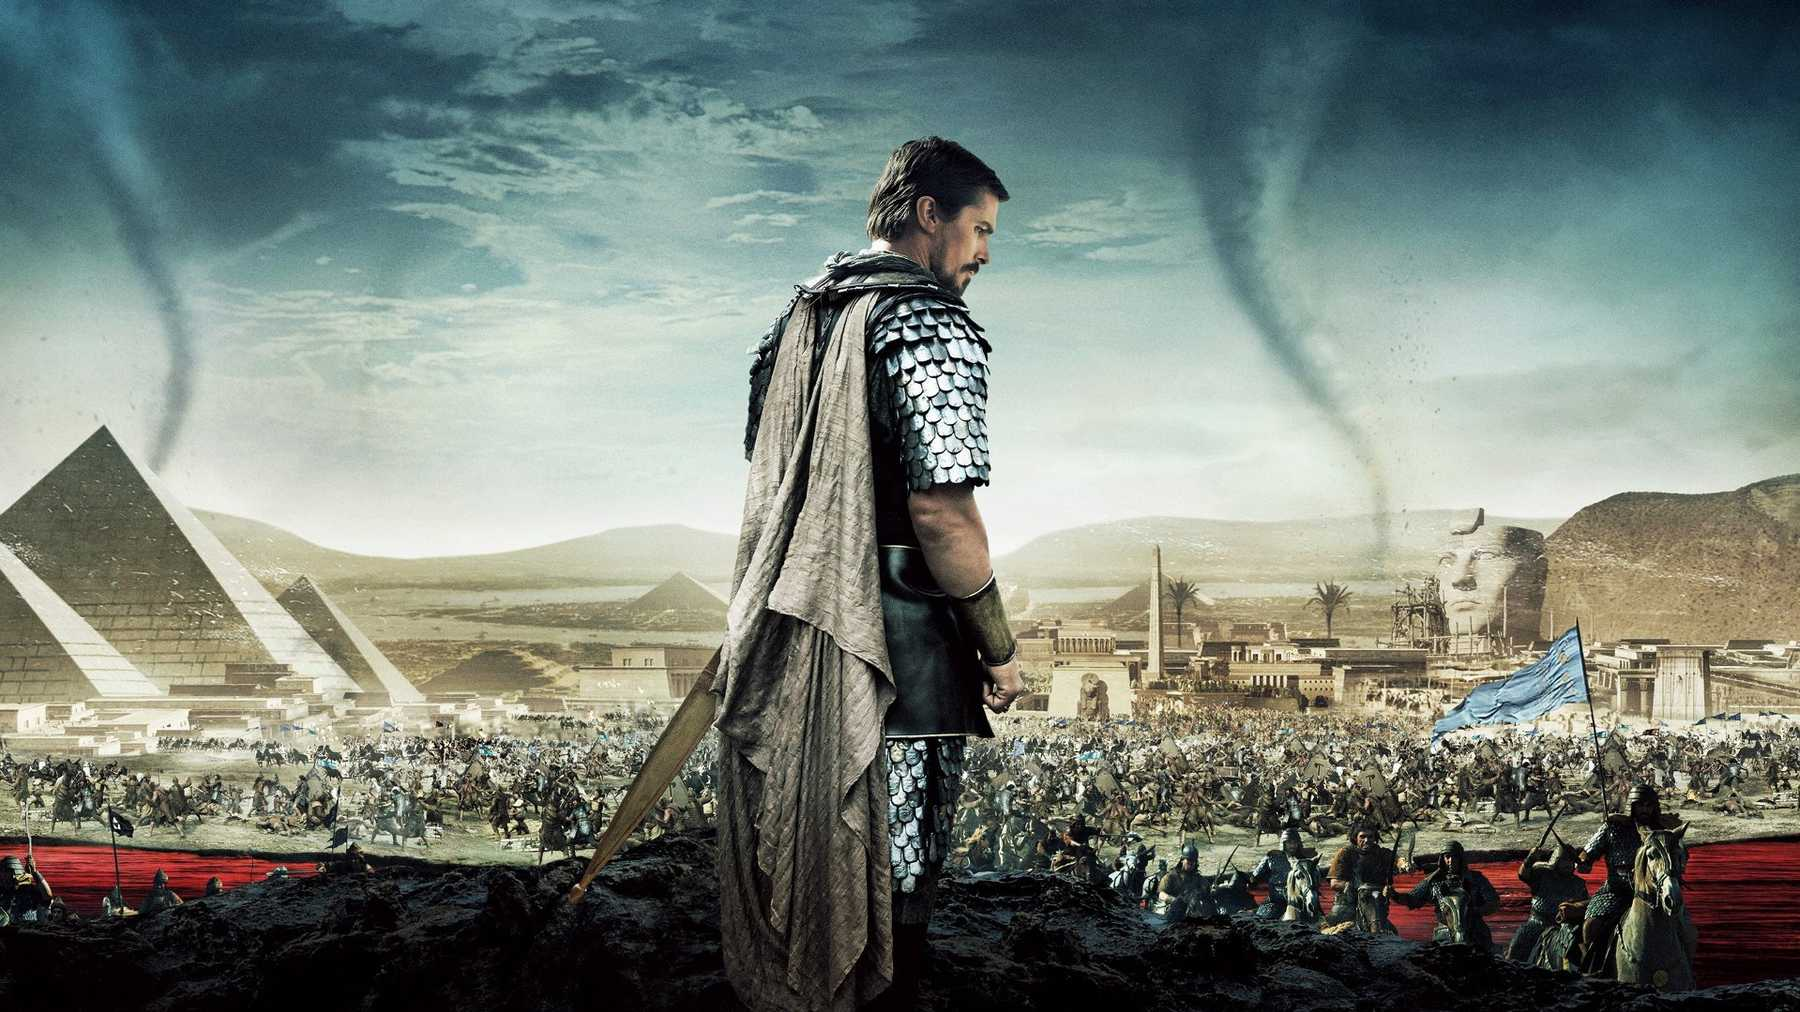 Omslagsbild för filmen Exodus: Gods And Kings